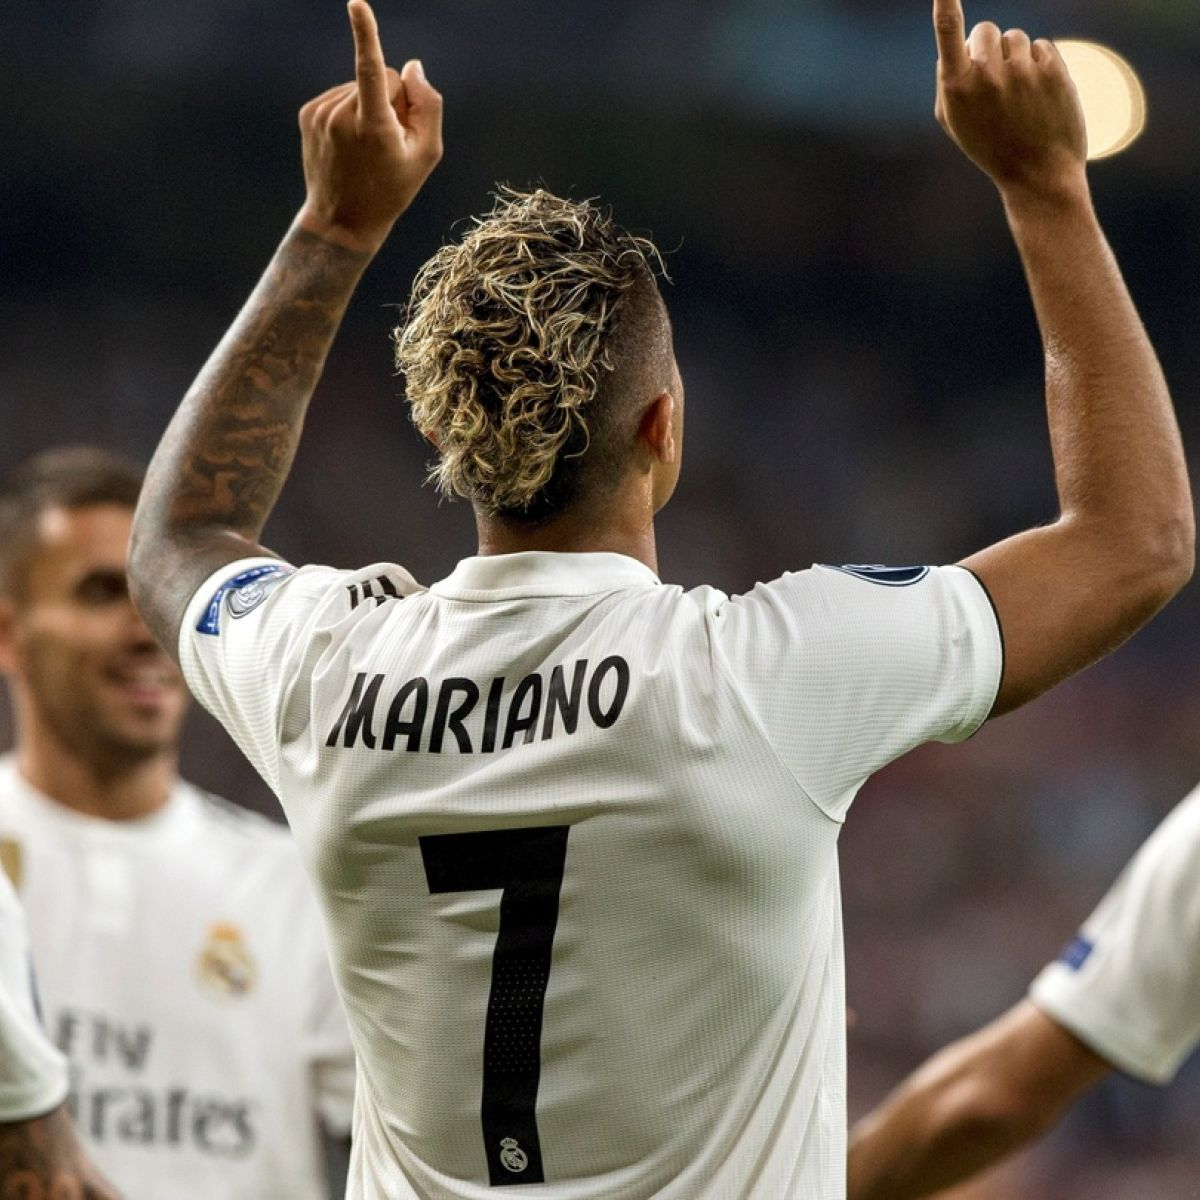 sale retailer 144db 70d87 Real Madrid's new No 7 - Mariano Díaz is one to watch